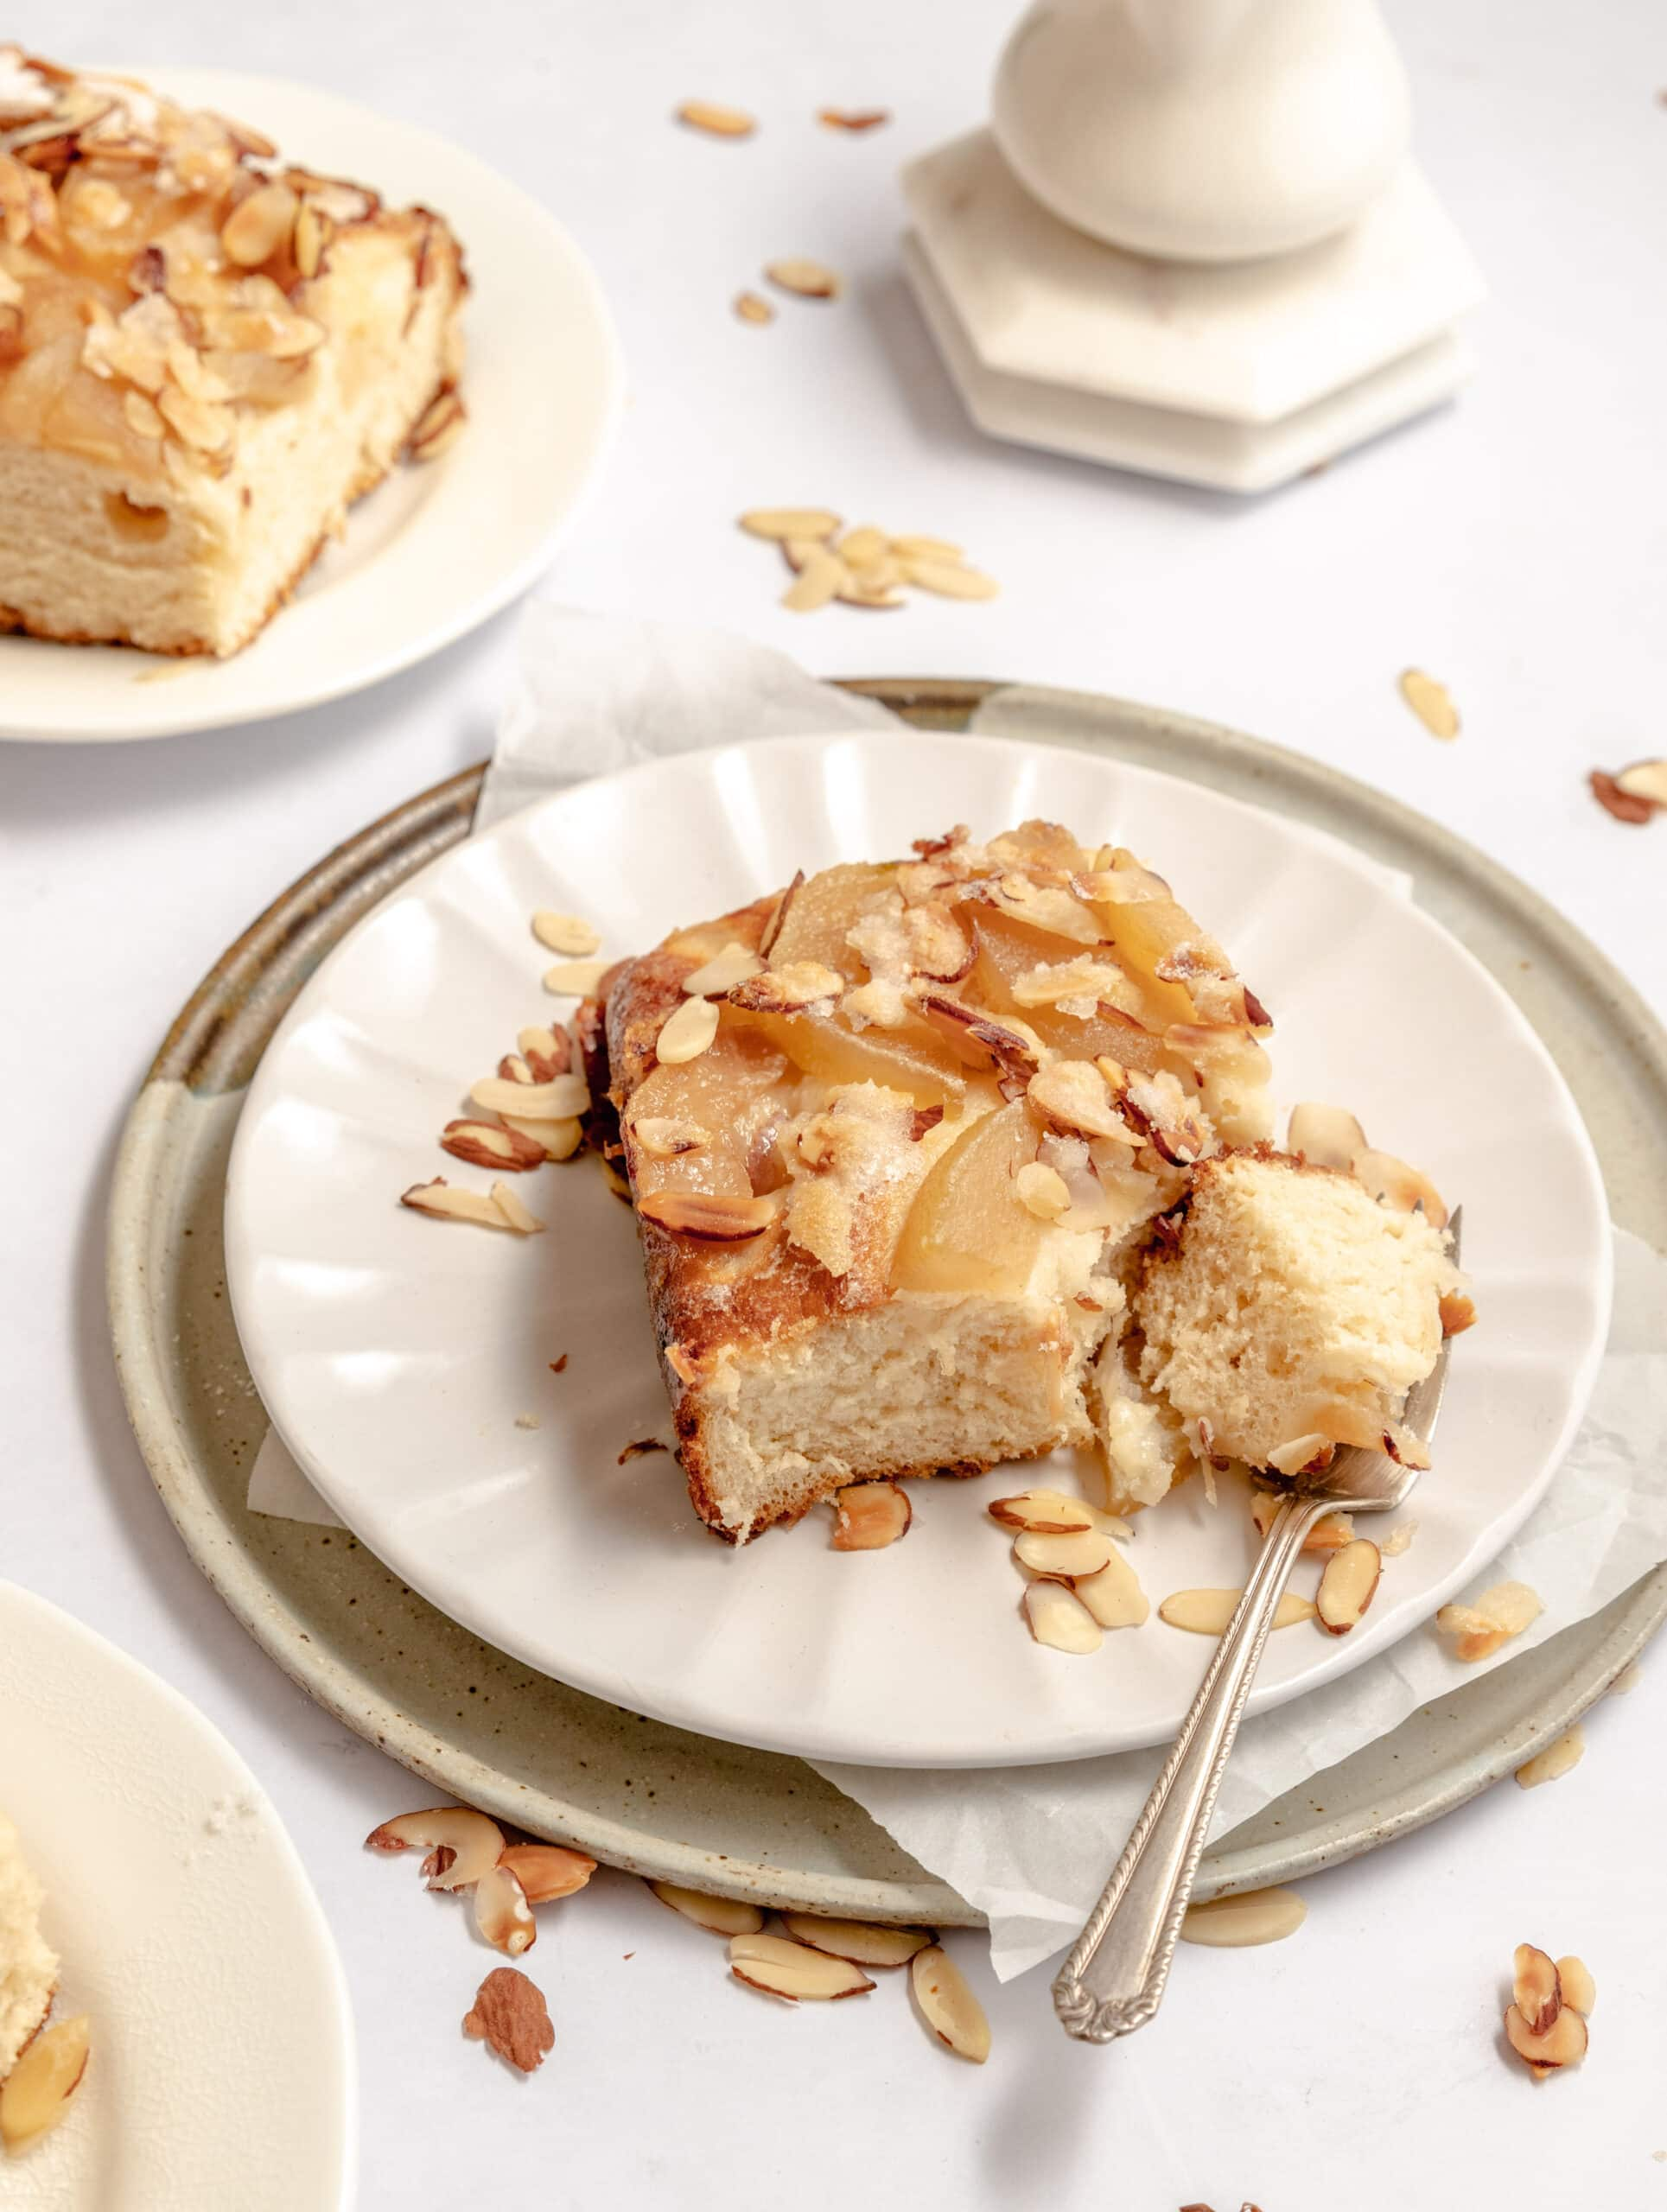 Close up image of a slice of the almond pear butterkuchen on a stack of two plates with extra sliced almonds laying around.